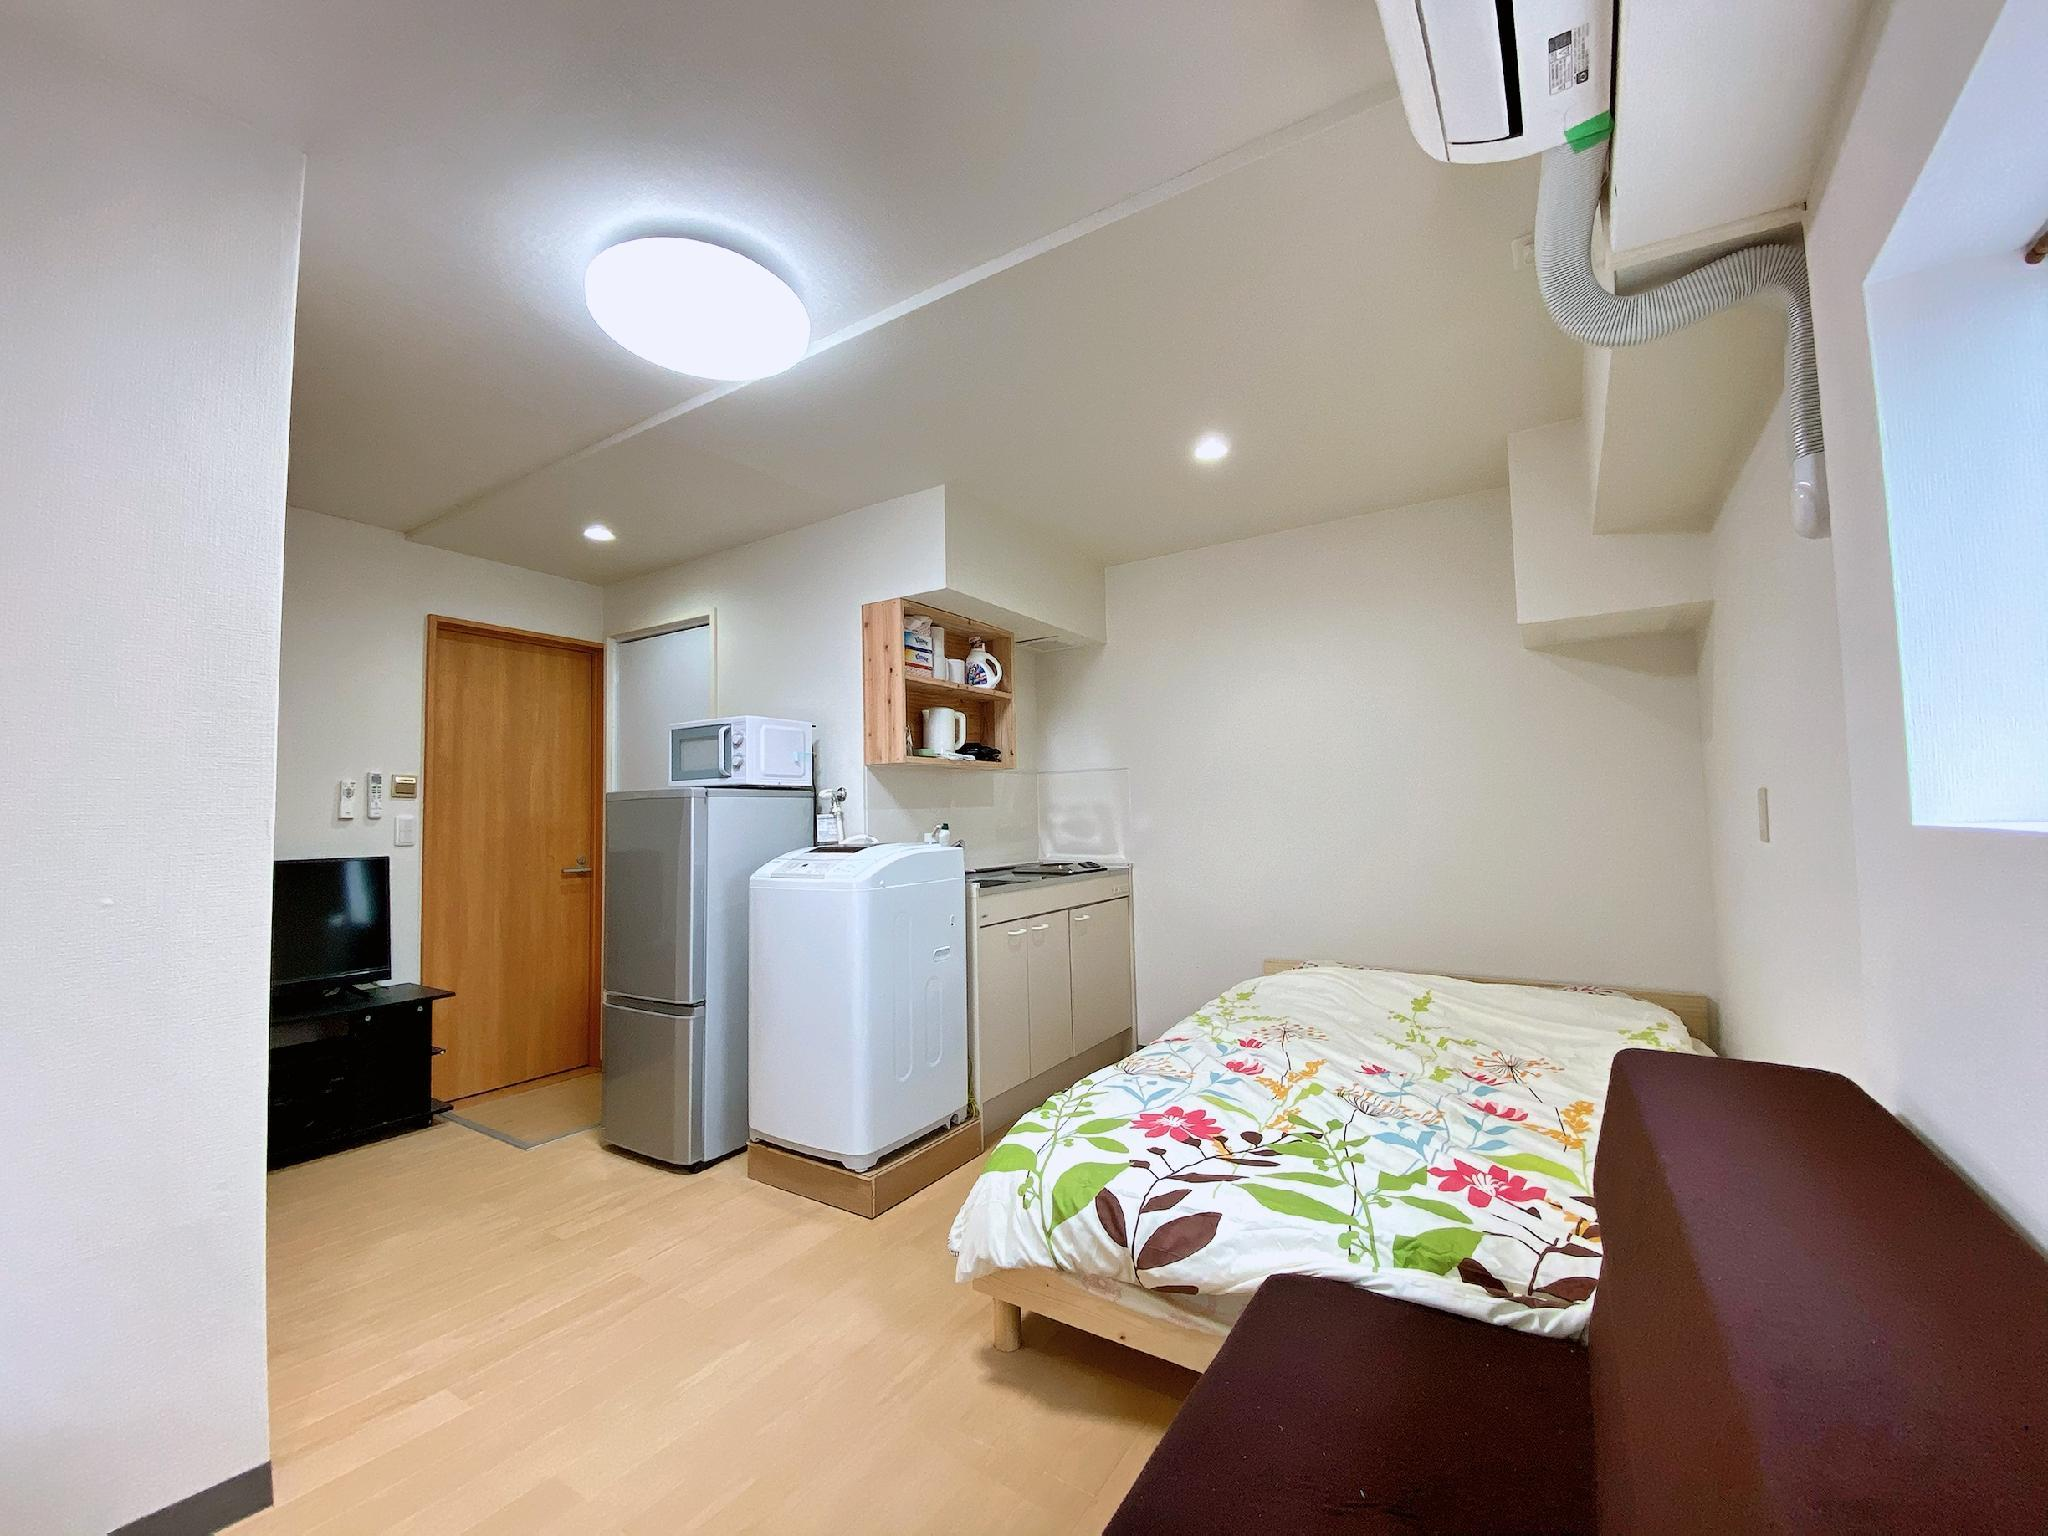 SKYTREE 4bathrooms+4Suite ABCD 5 Min Oshiage St.